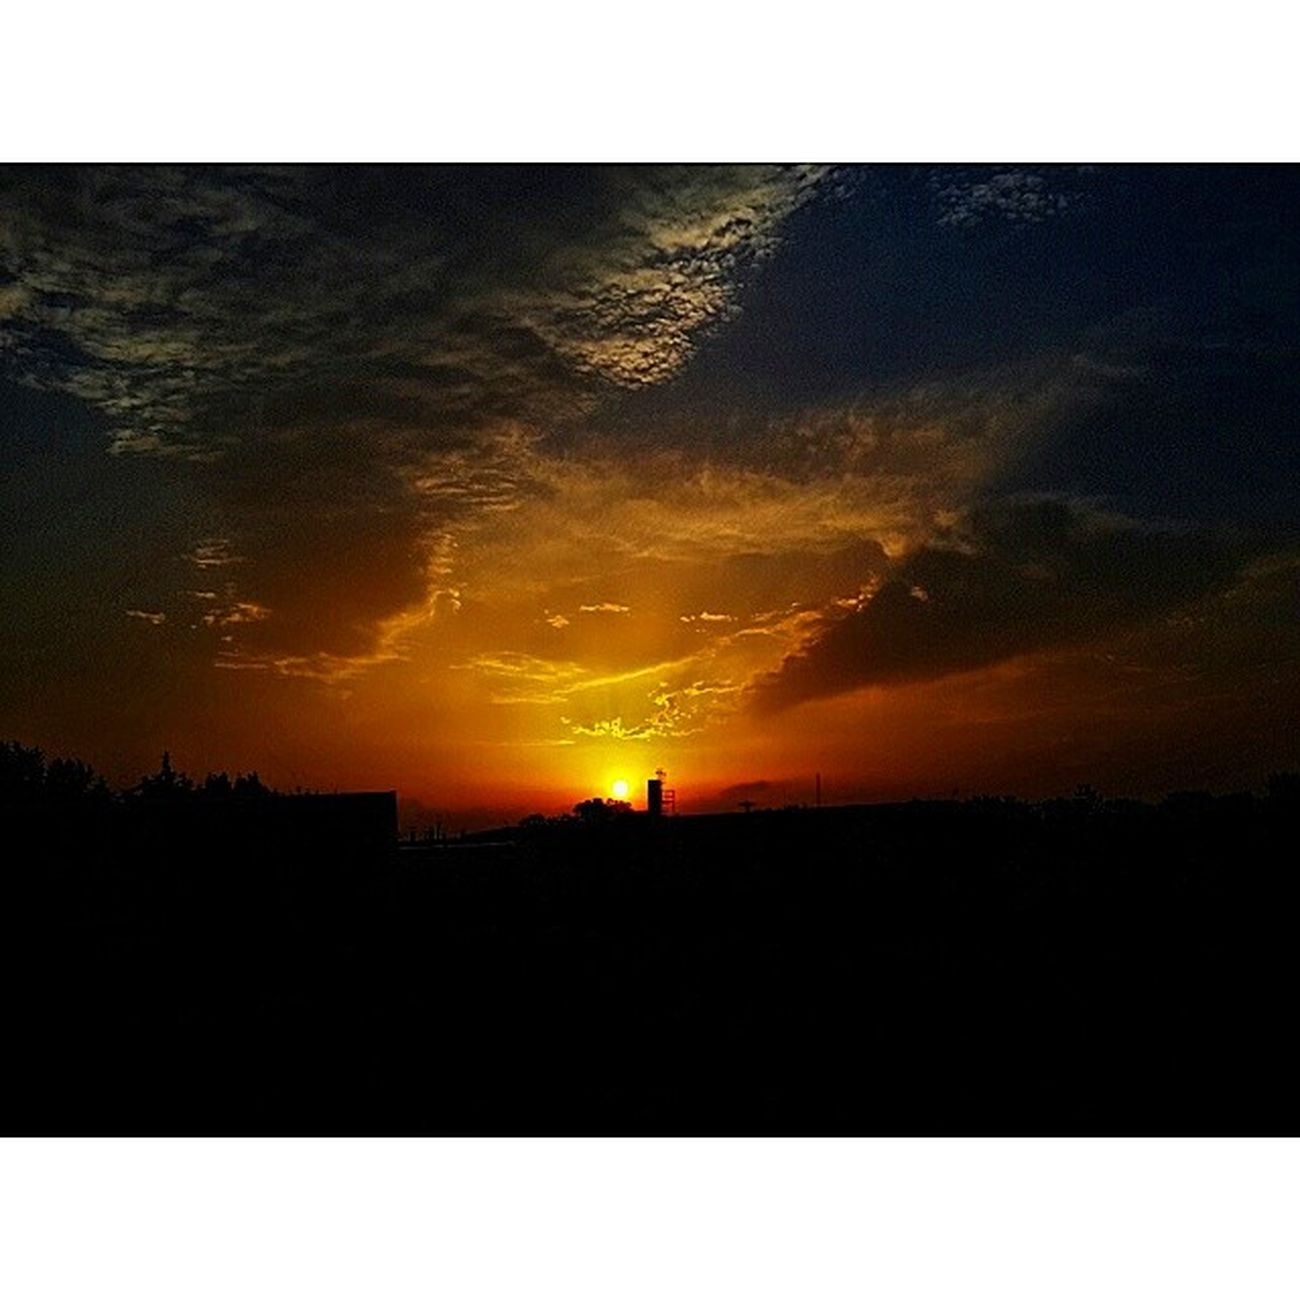 Landscape Gun Batımı Cloud sun photograph photooftheday photographer photo gunun_resmi fotograf vsco fotoğraf foto picture resim instalike instafoto instapicture turkei istanbul insta_global instabeauty instalandscape vscocam vscophile